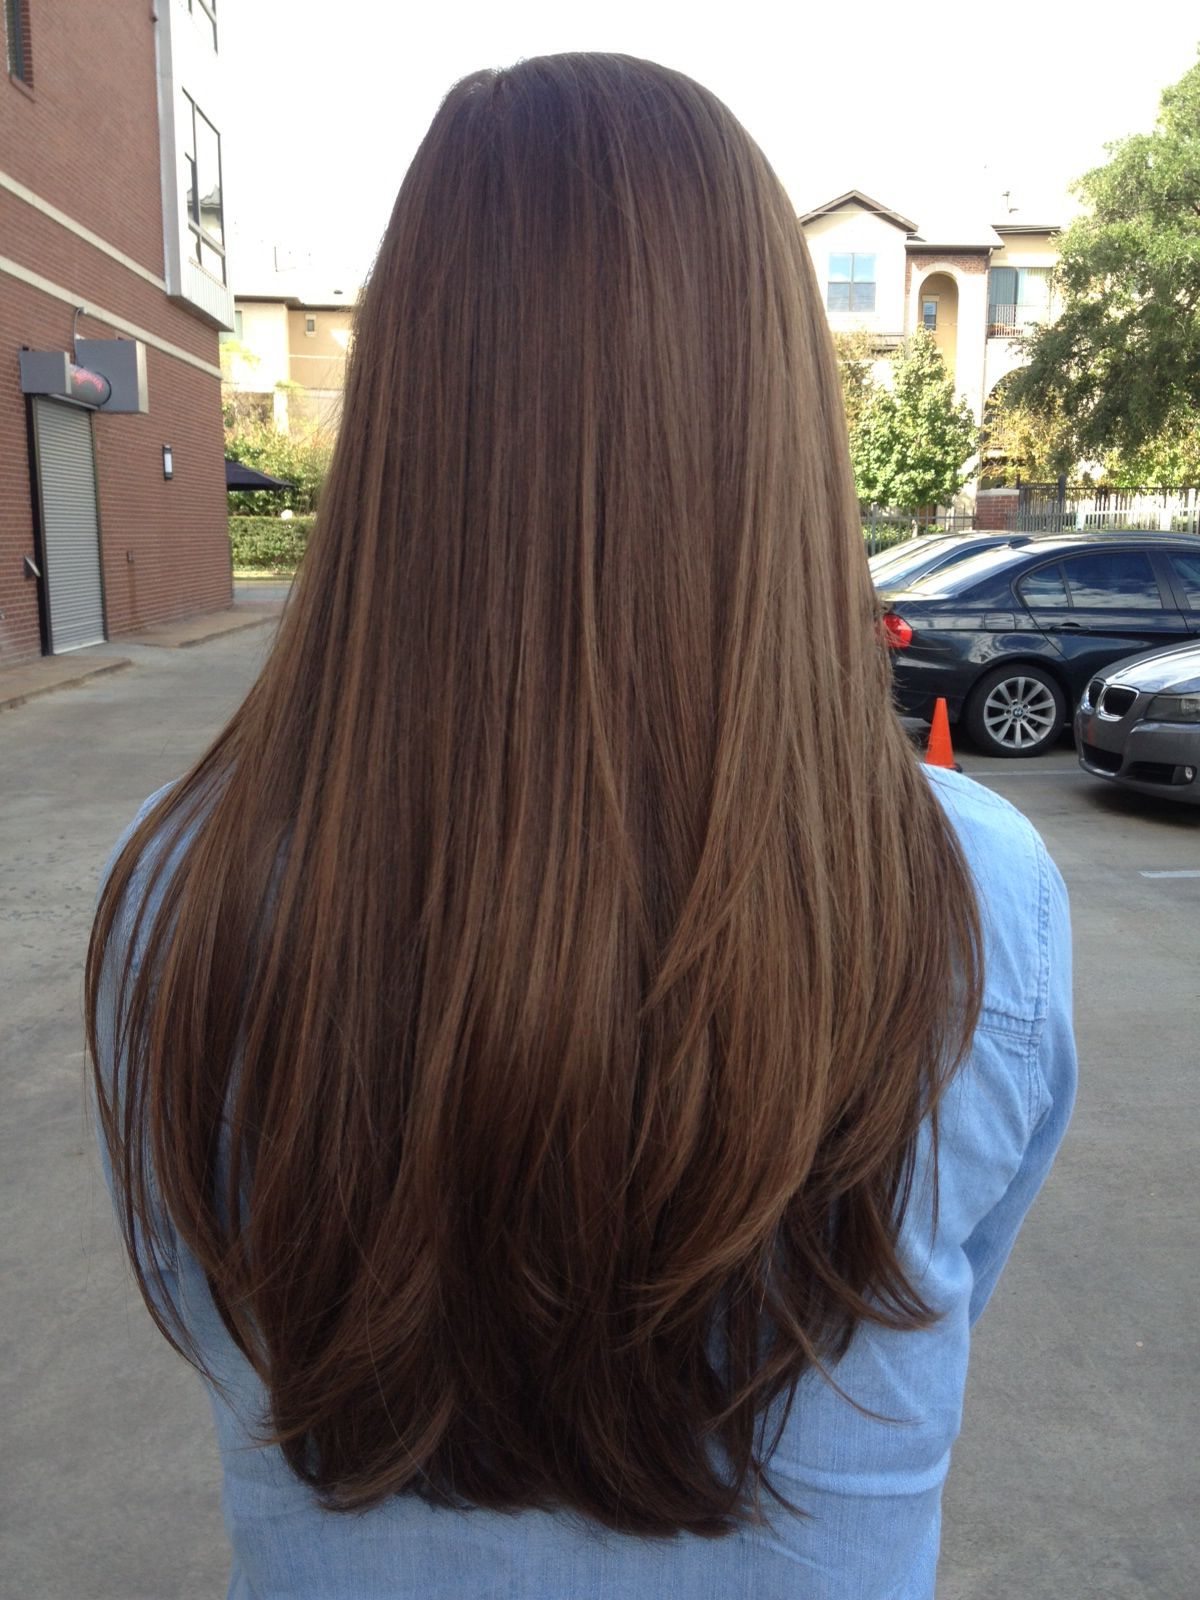 See how to grow Sexy Long Hair here: http://longhairtips.org/ Color and long hair cut!